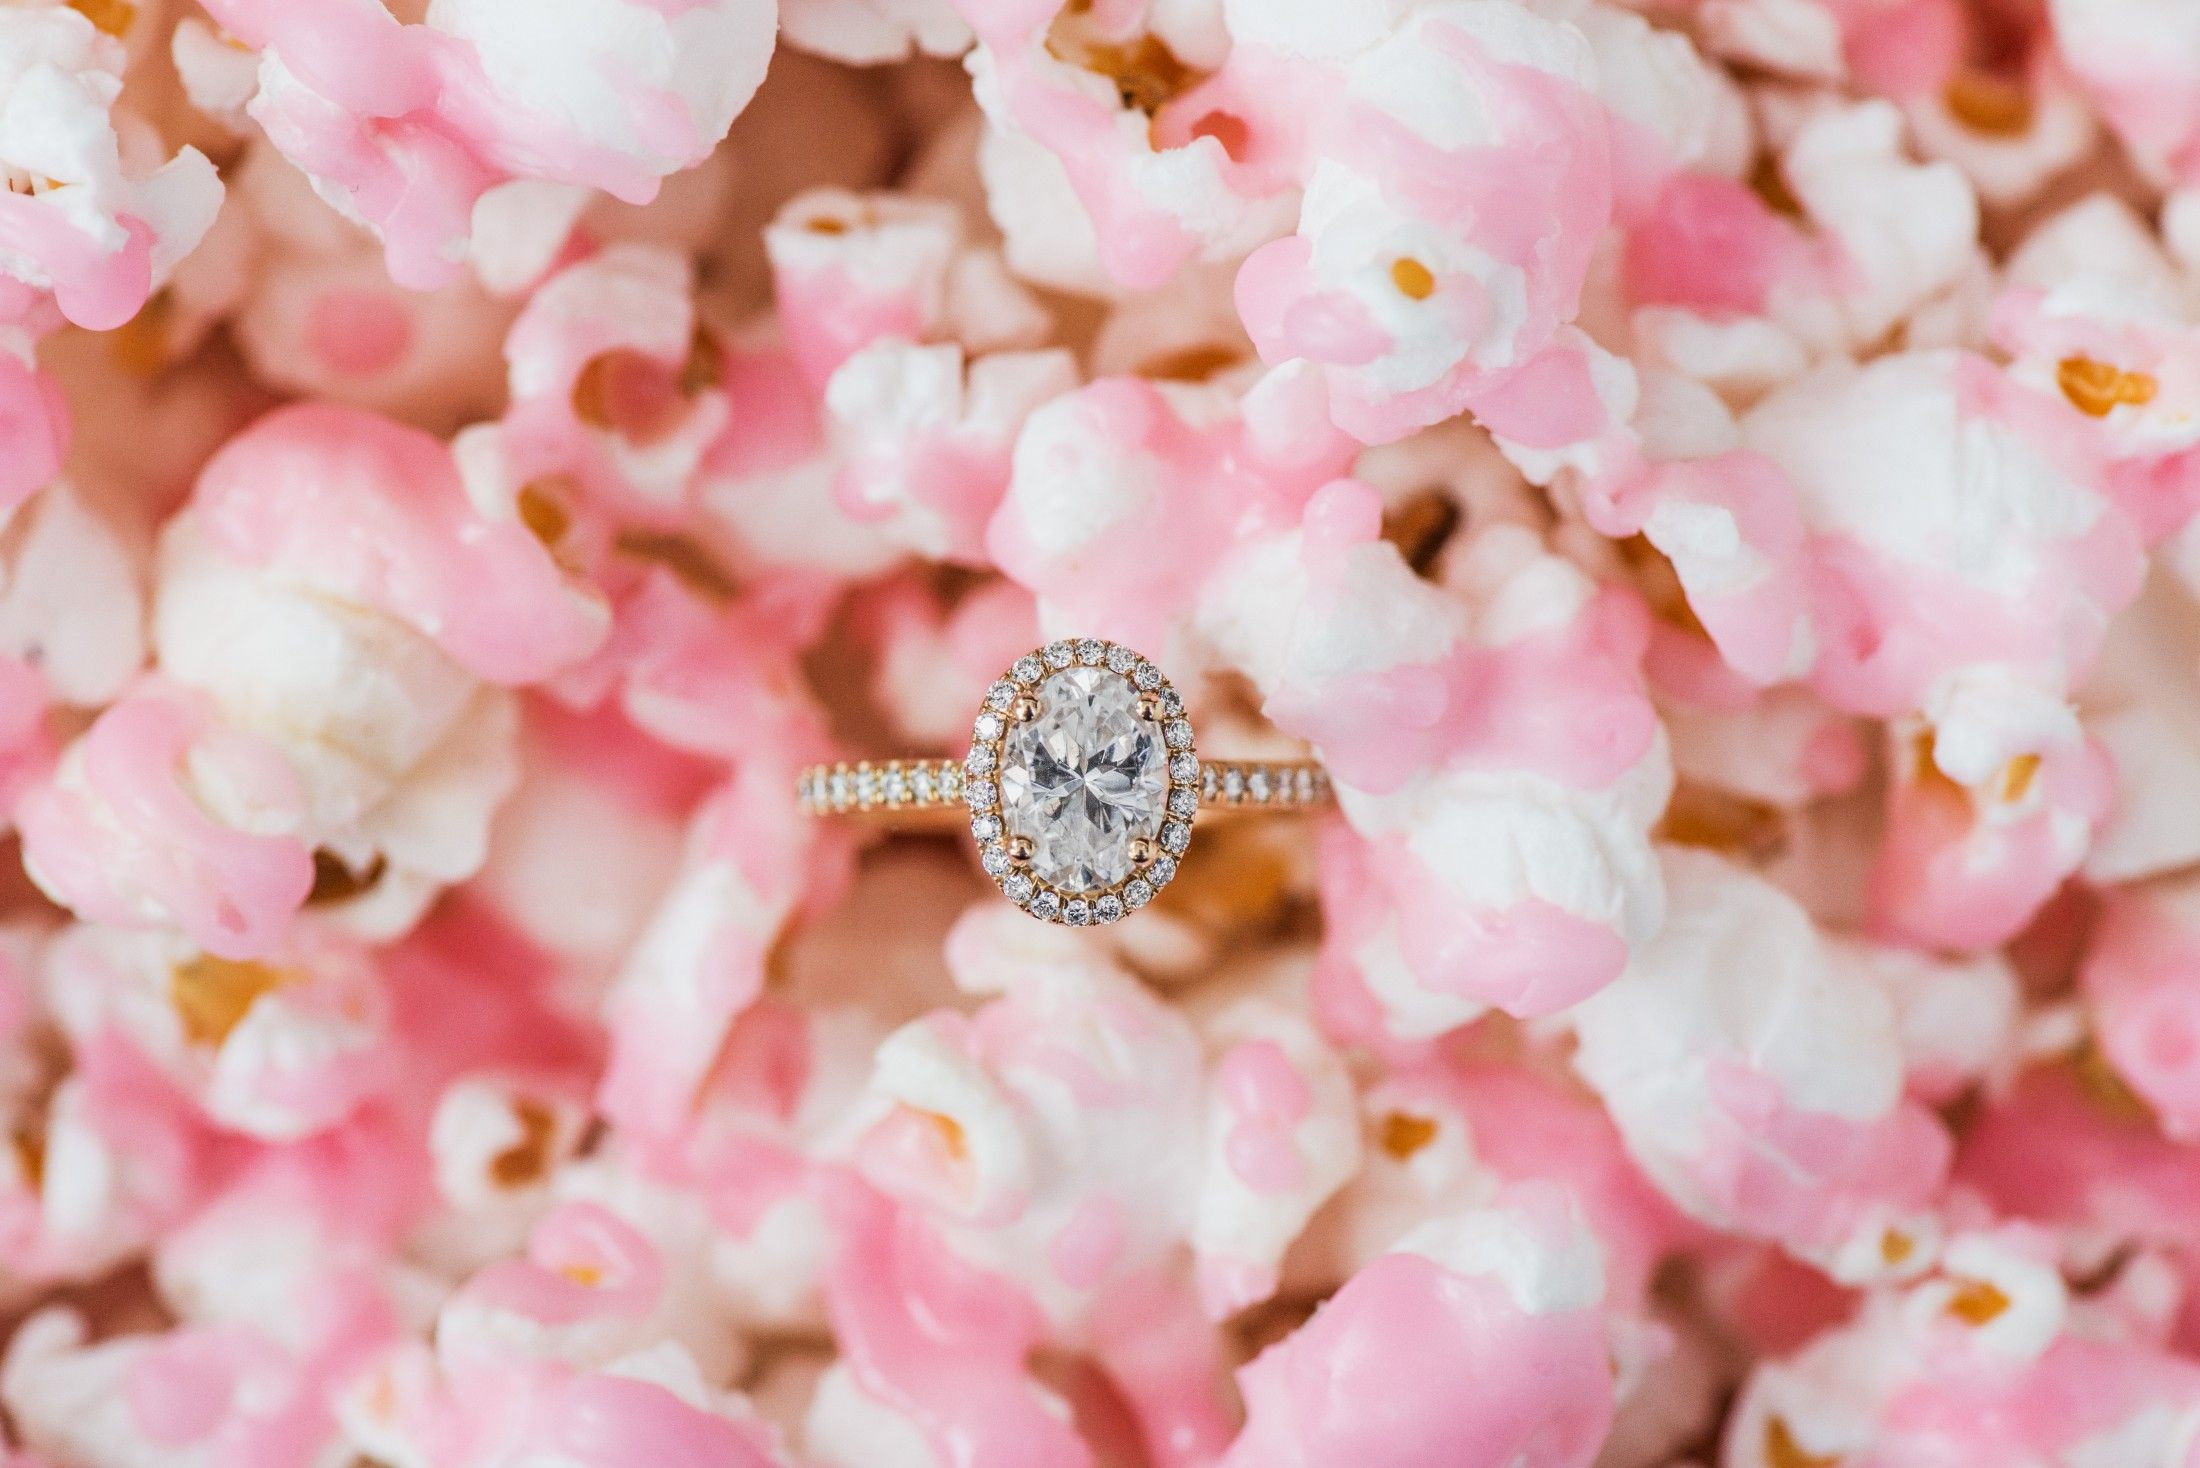 ad] Click to browse stunning James Allen engagement rings! | tickled ...